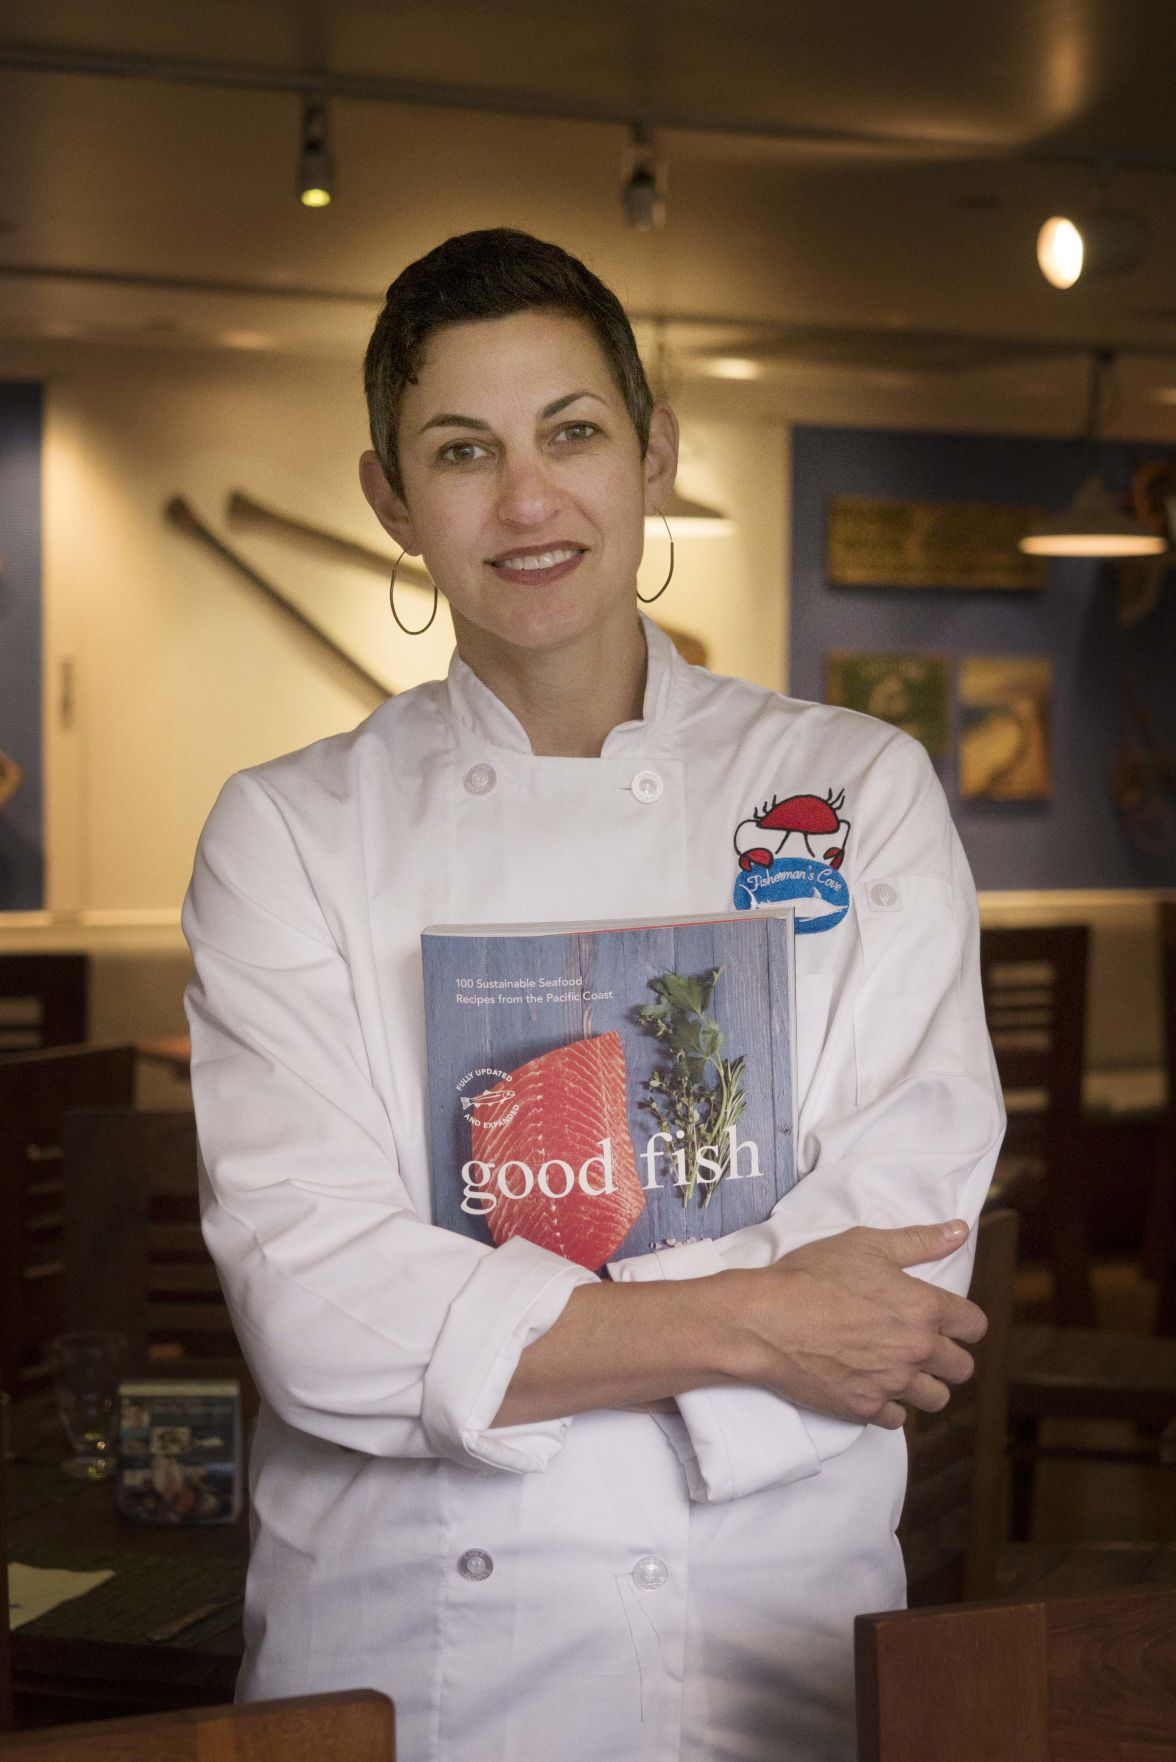 Visiting Seattle chef highlights sustainable seafood